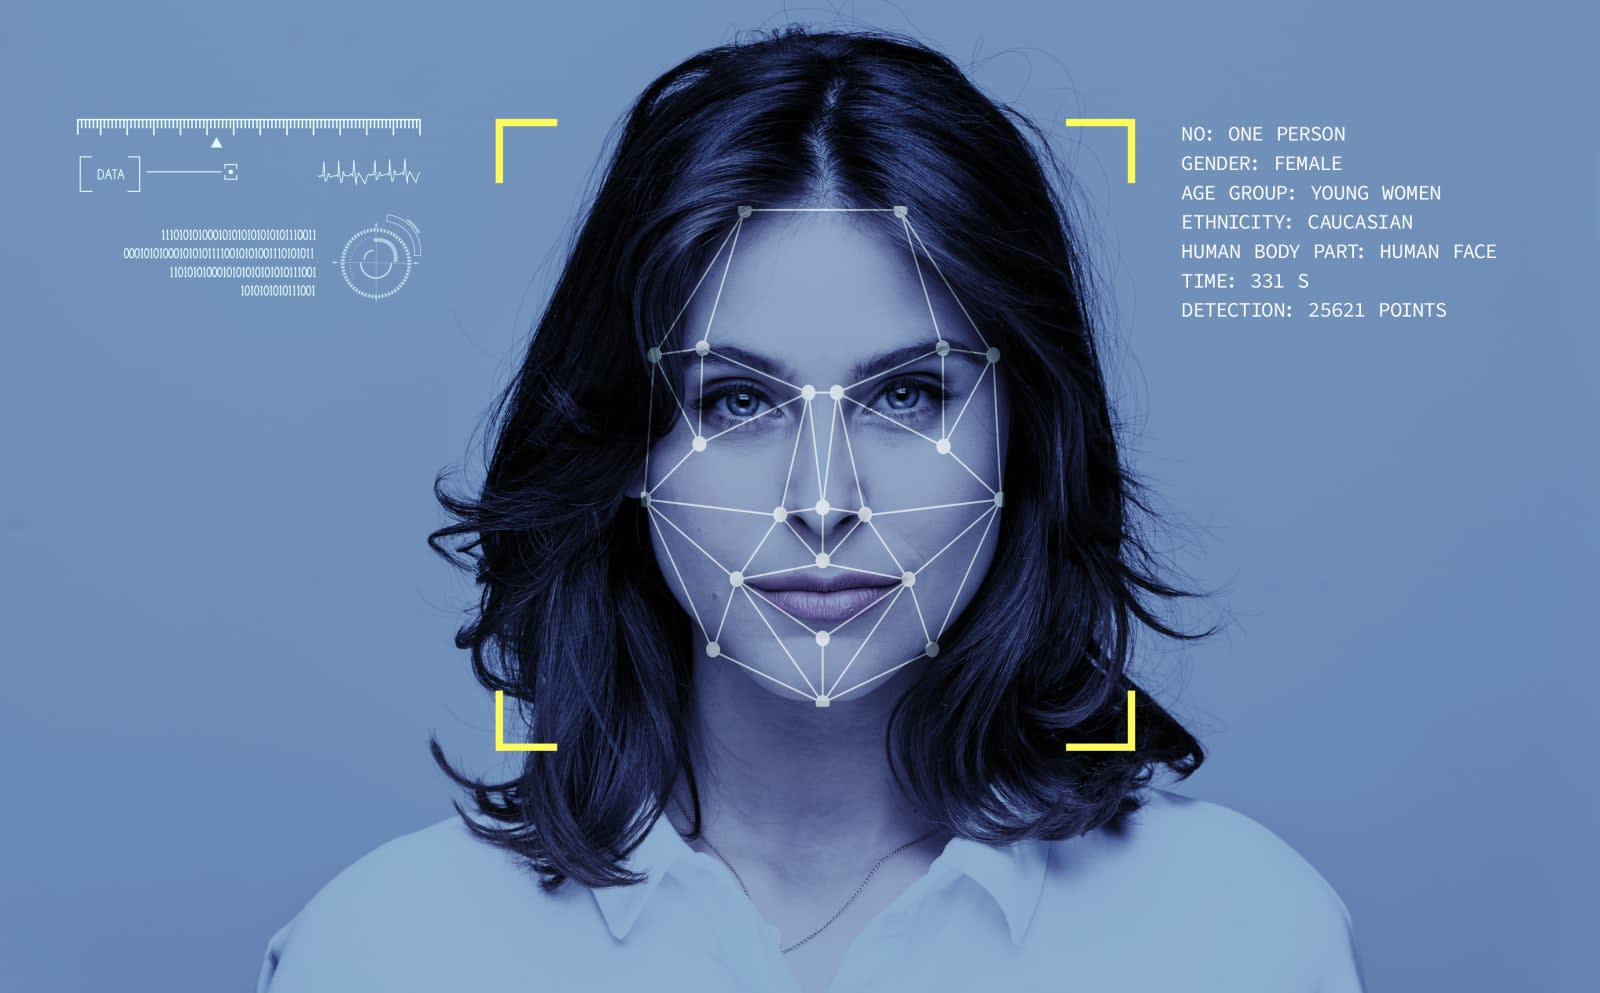 Microsoft discreetly wiped its massive facial recognition